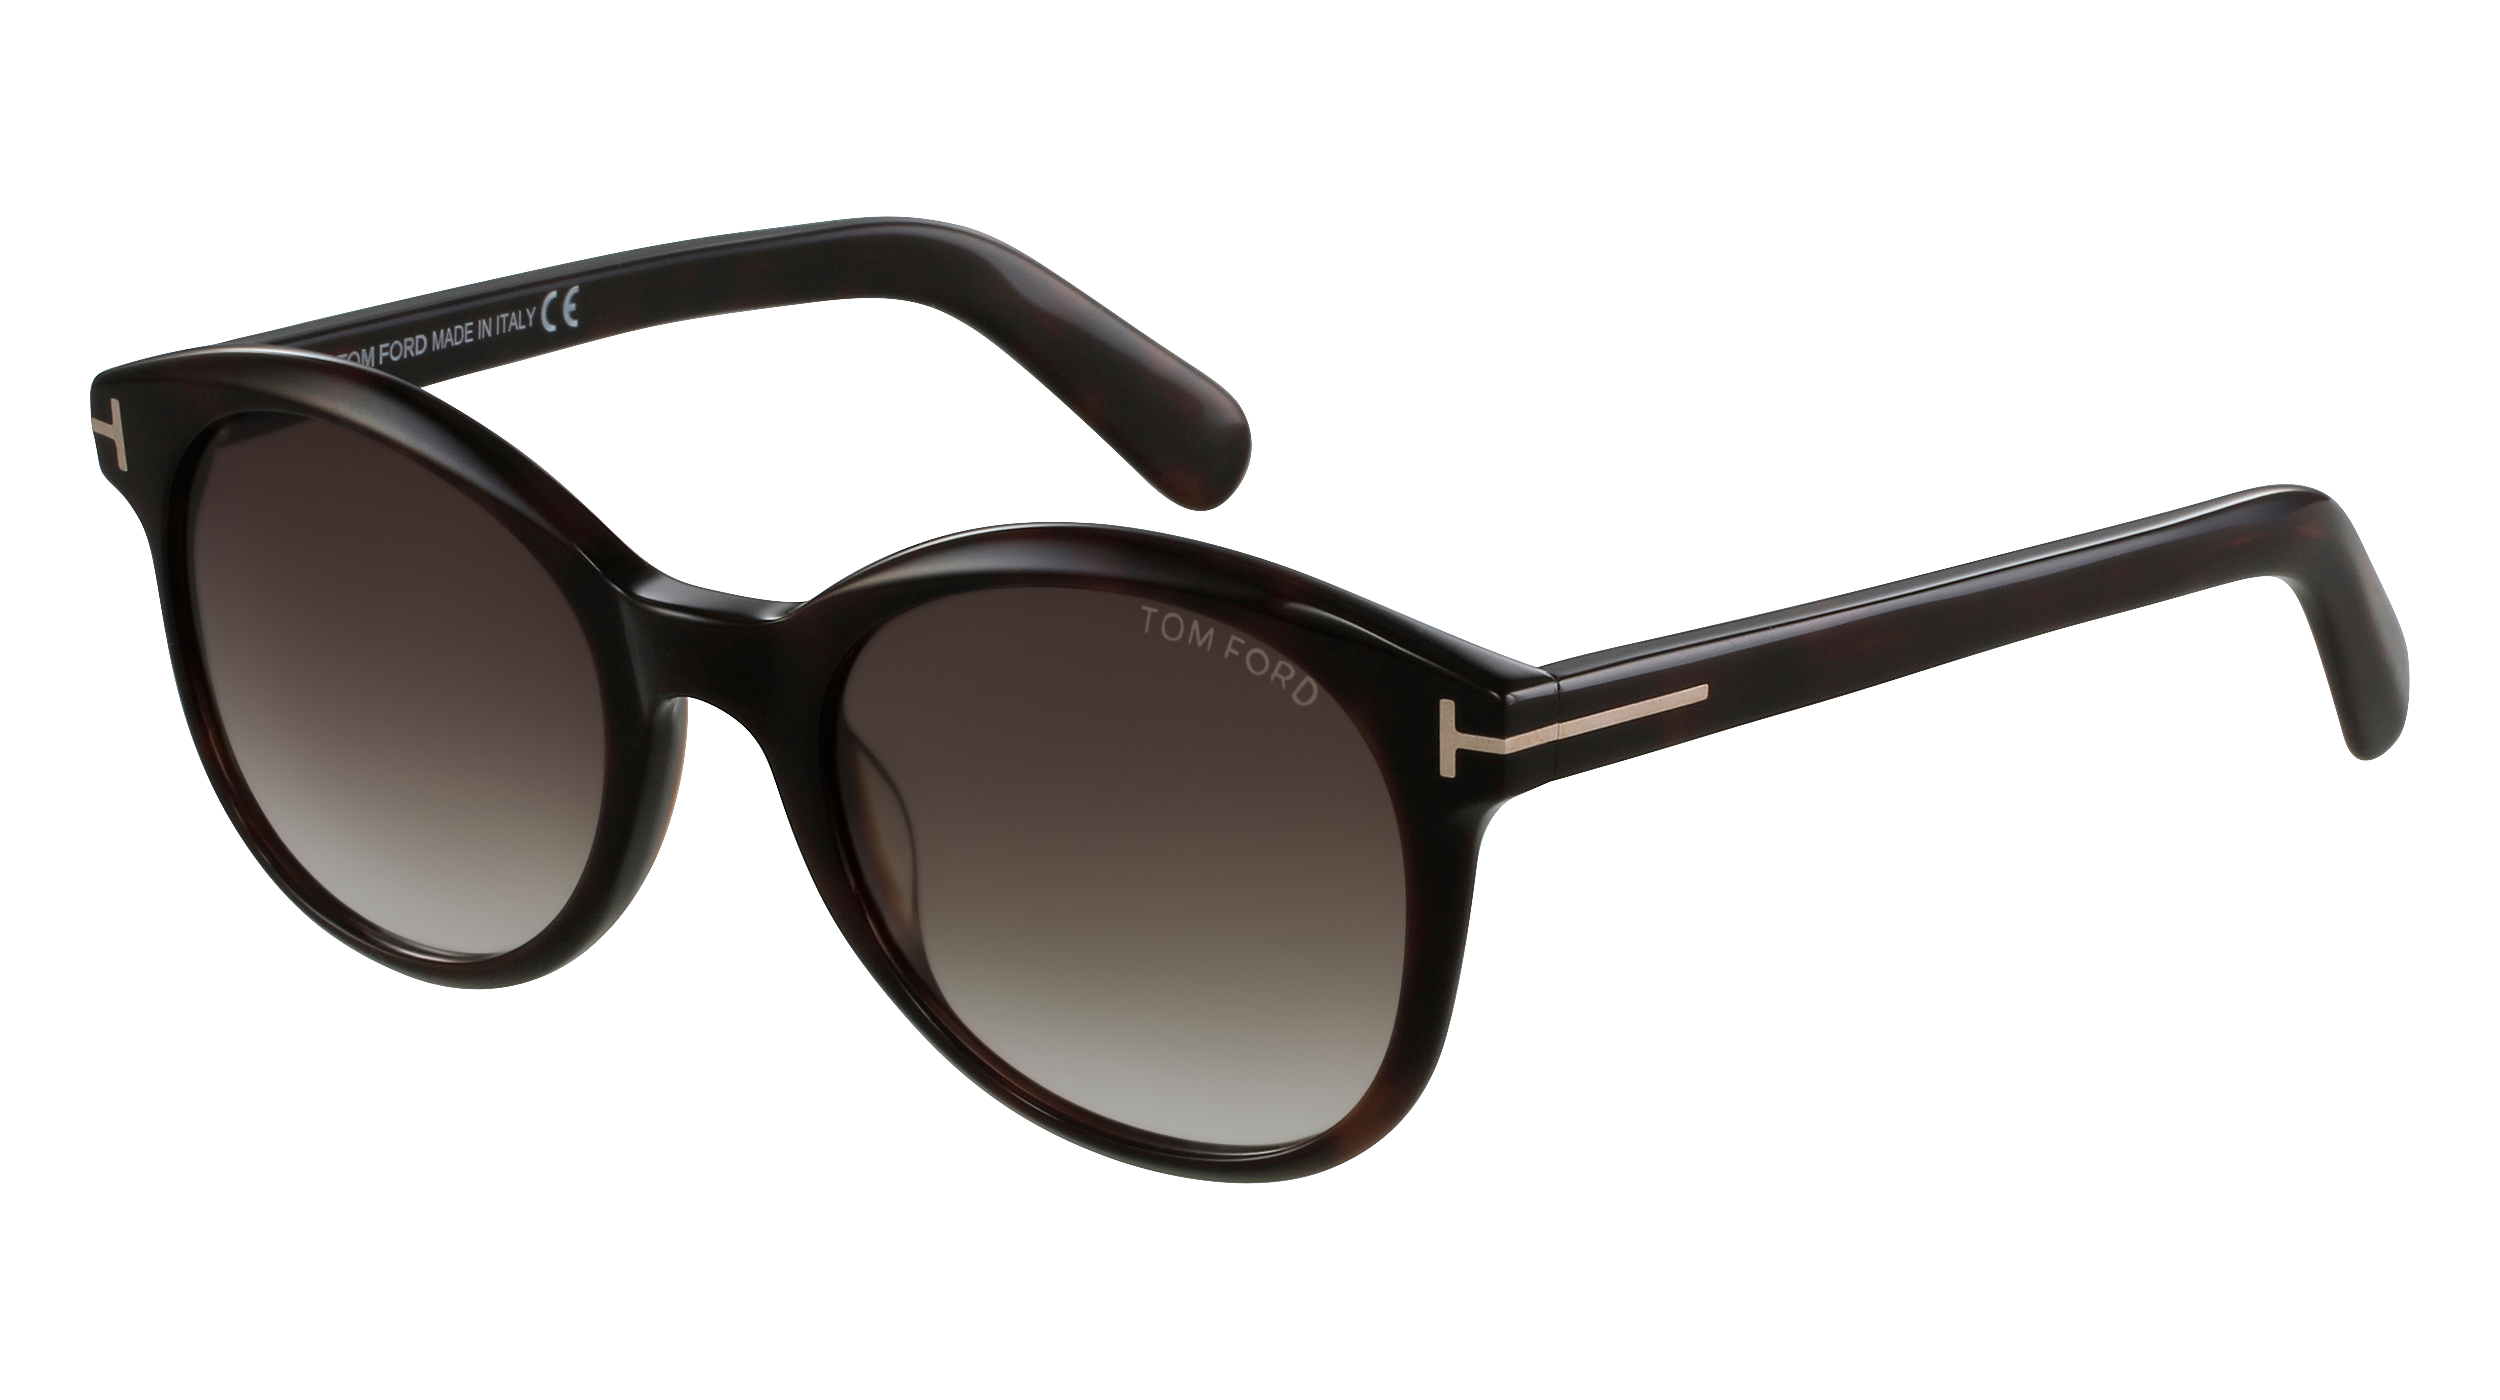 Tom Ford FT0298-S-52F-51-19-135